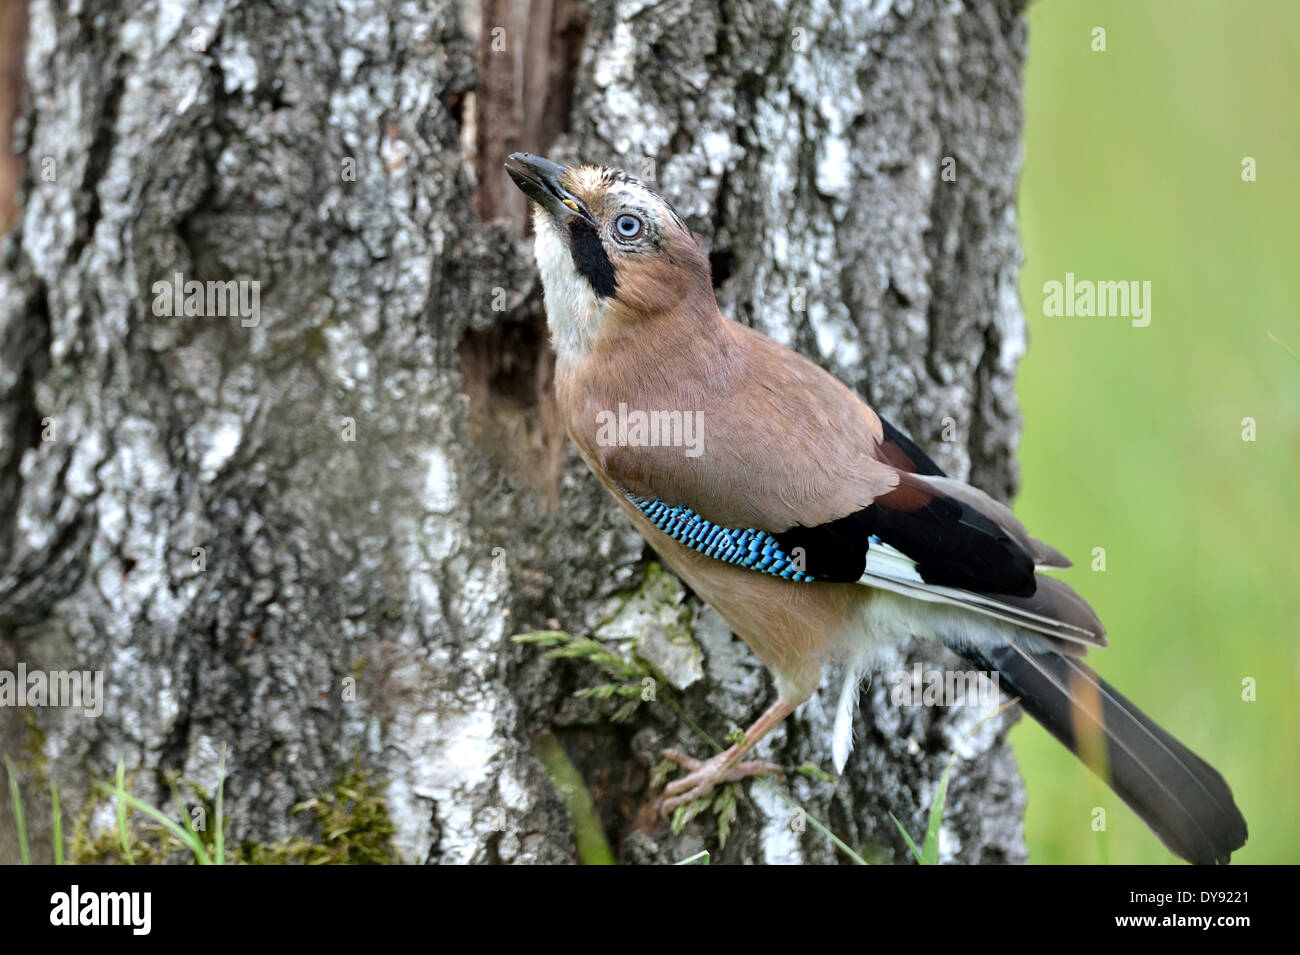 Jay, songbirds, passerines, corvids, Garrulus glandarius, birds, bird, animal, animals, Germany, Europe, - Stock Image